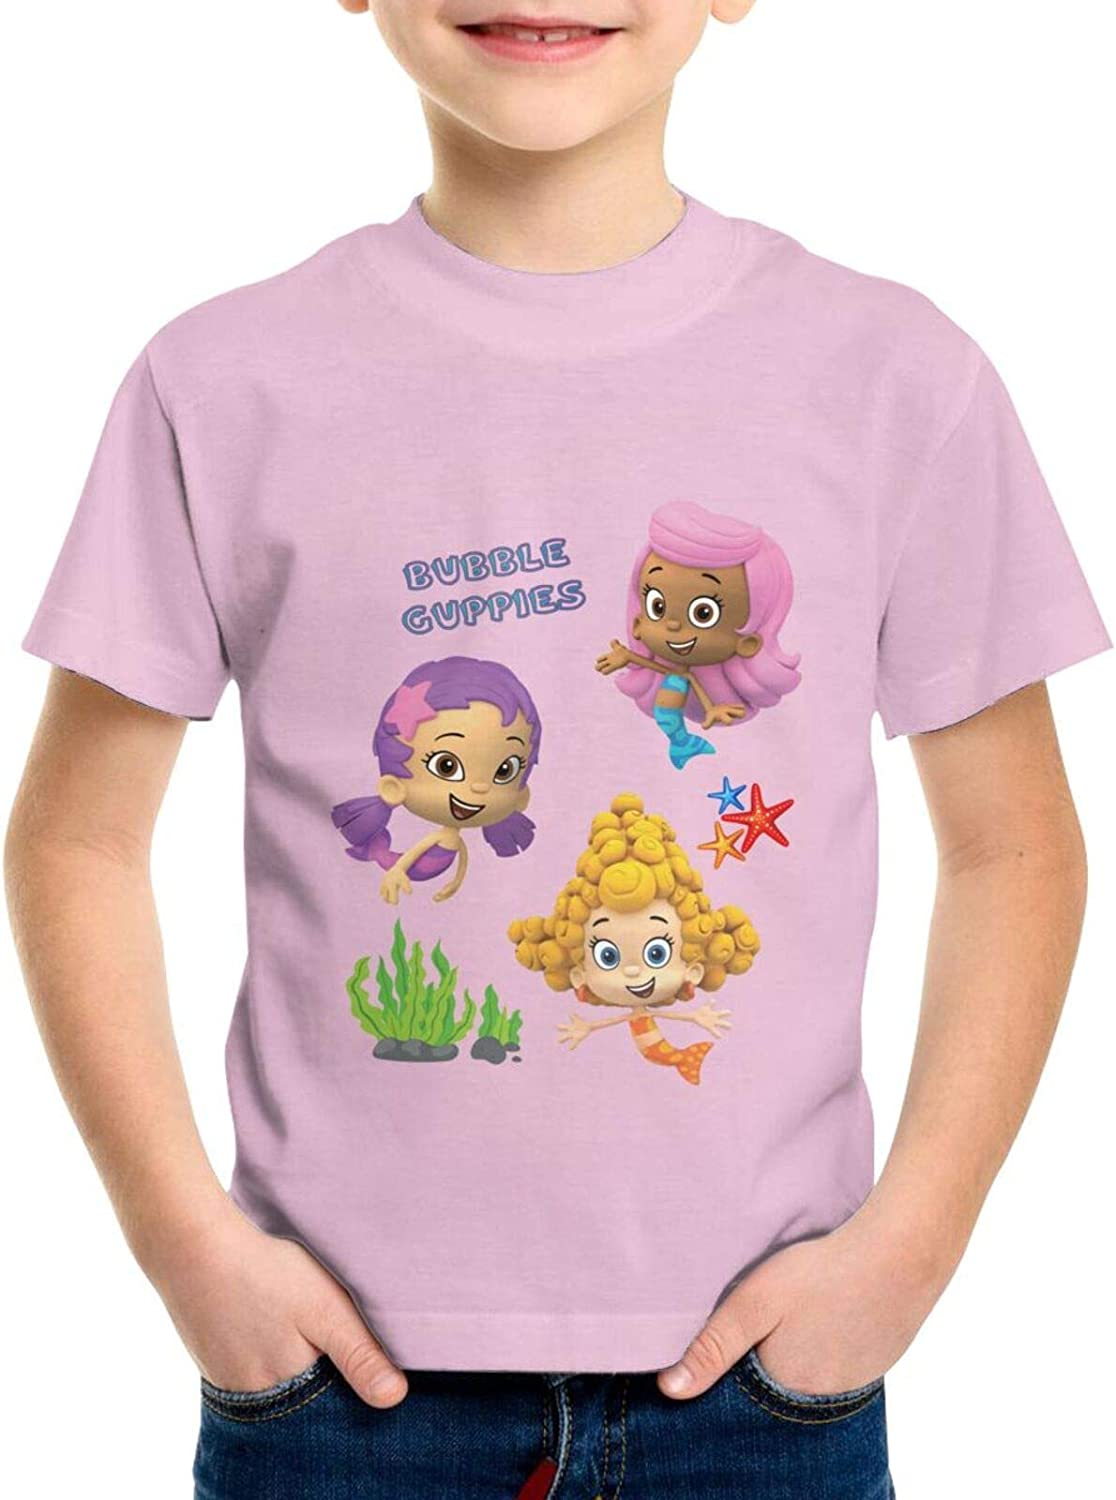 GIPHOJO Boys Girls T-Shirt Kids Tops Tees Max 58% OFF Clothing for Children Popularity